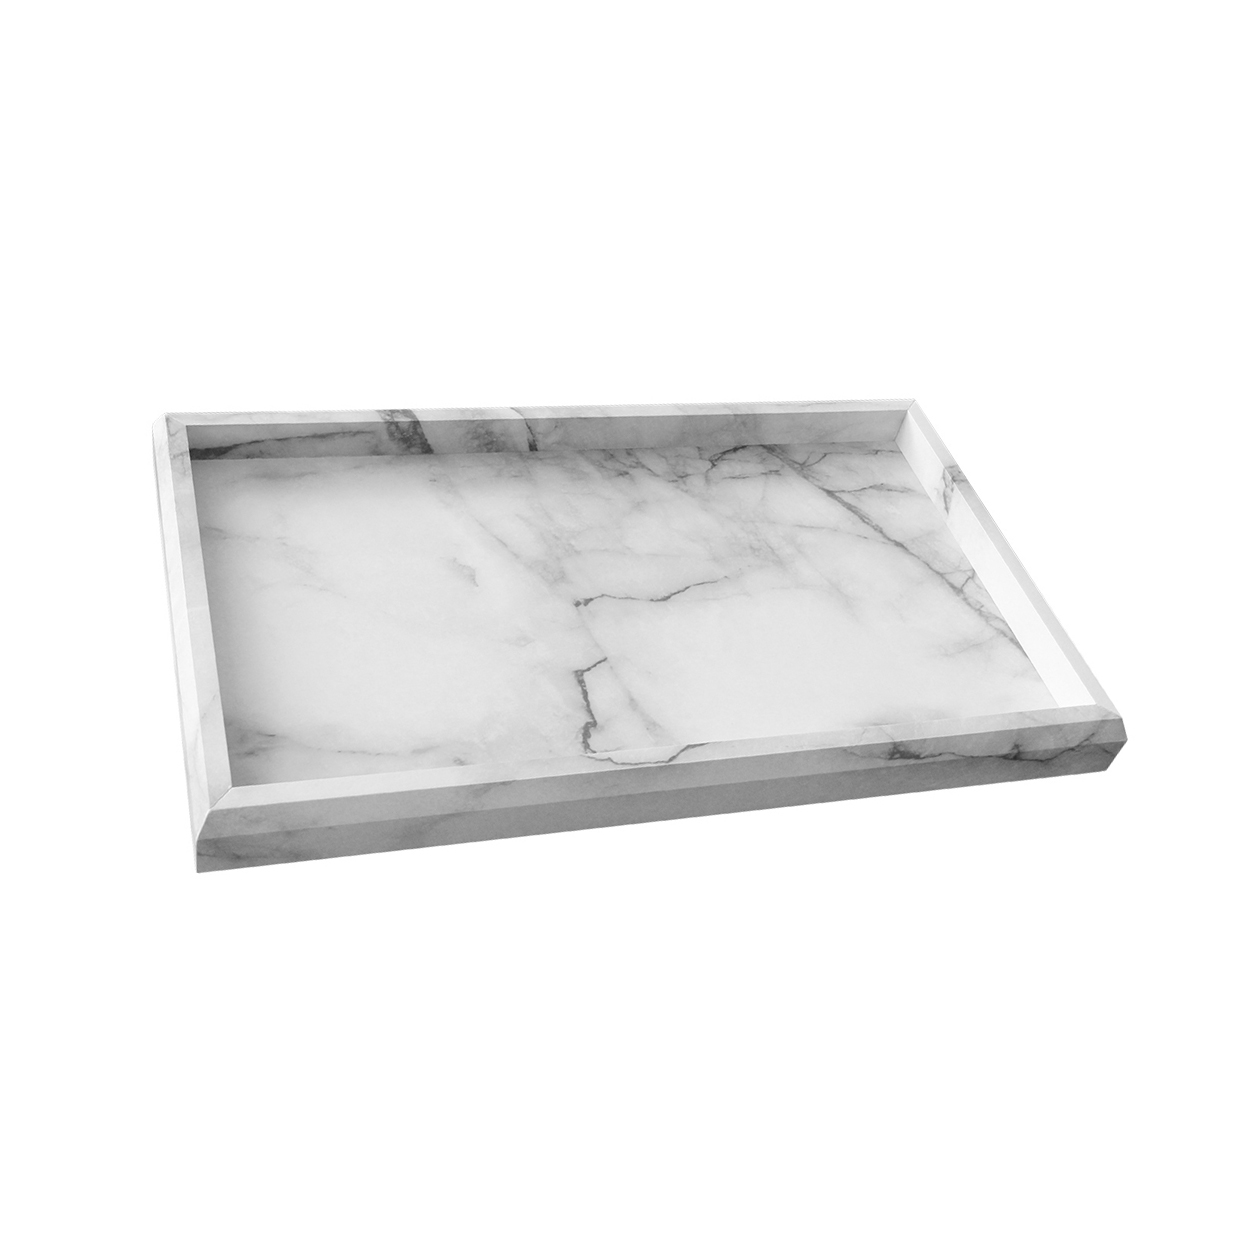 ark decorative in weavers p b white glass artistic tray x decor rustic a trays home